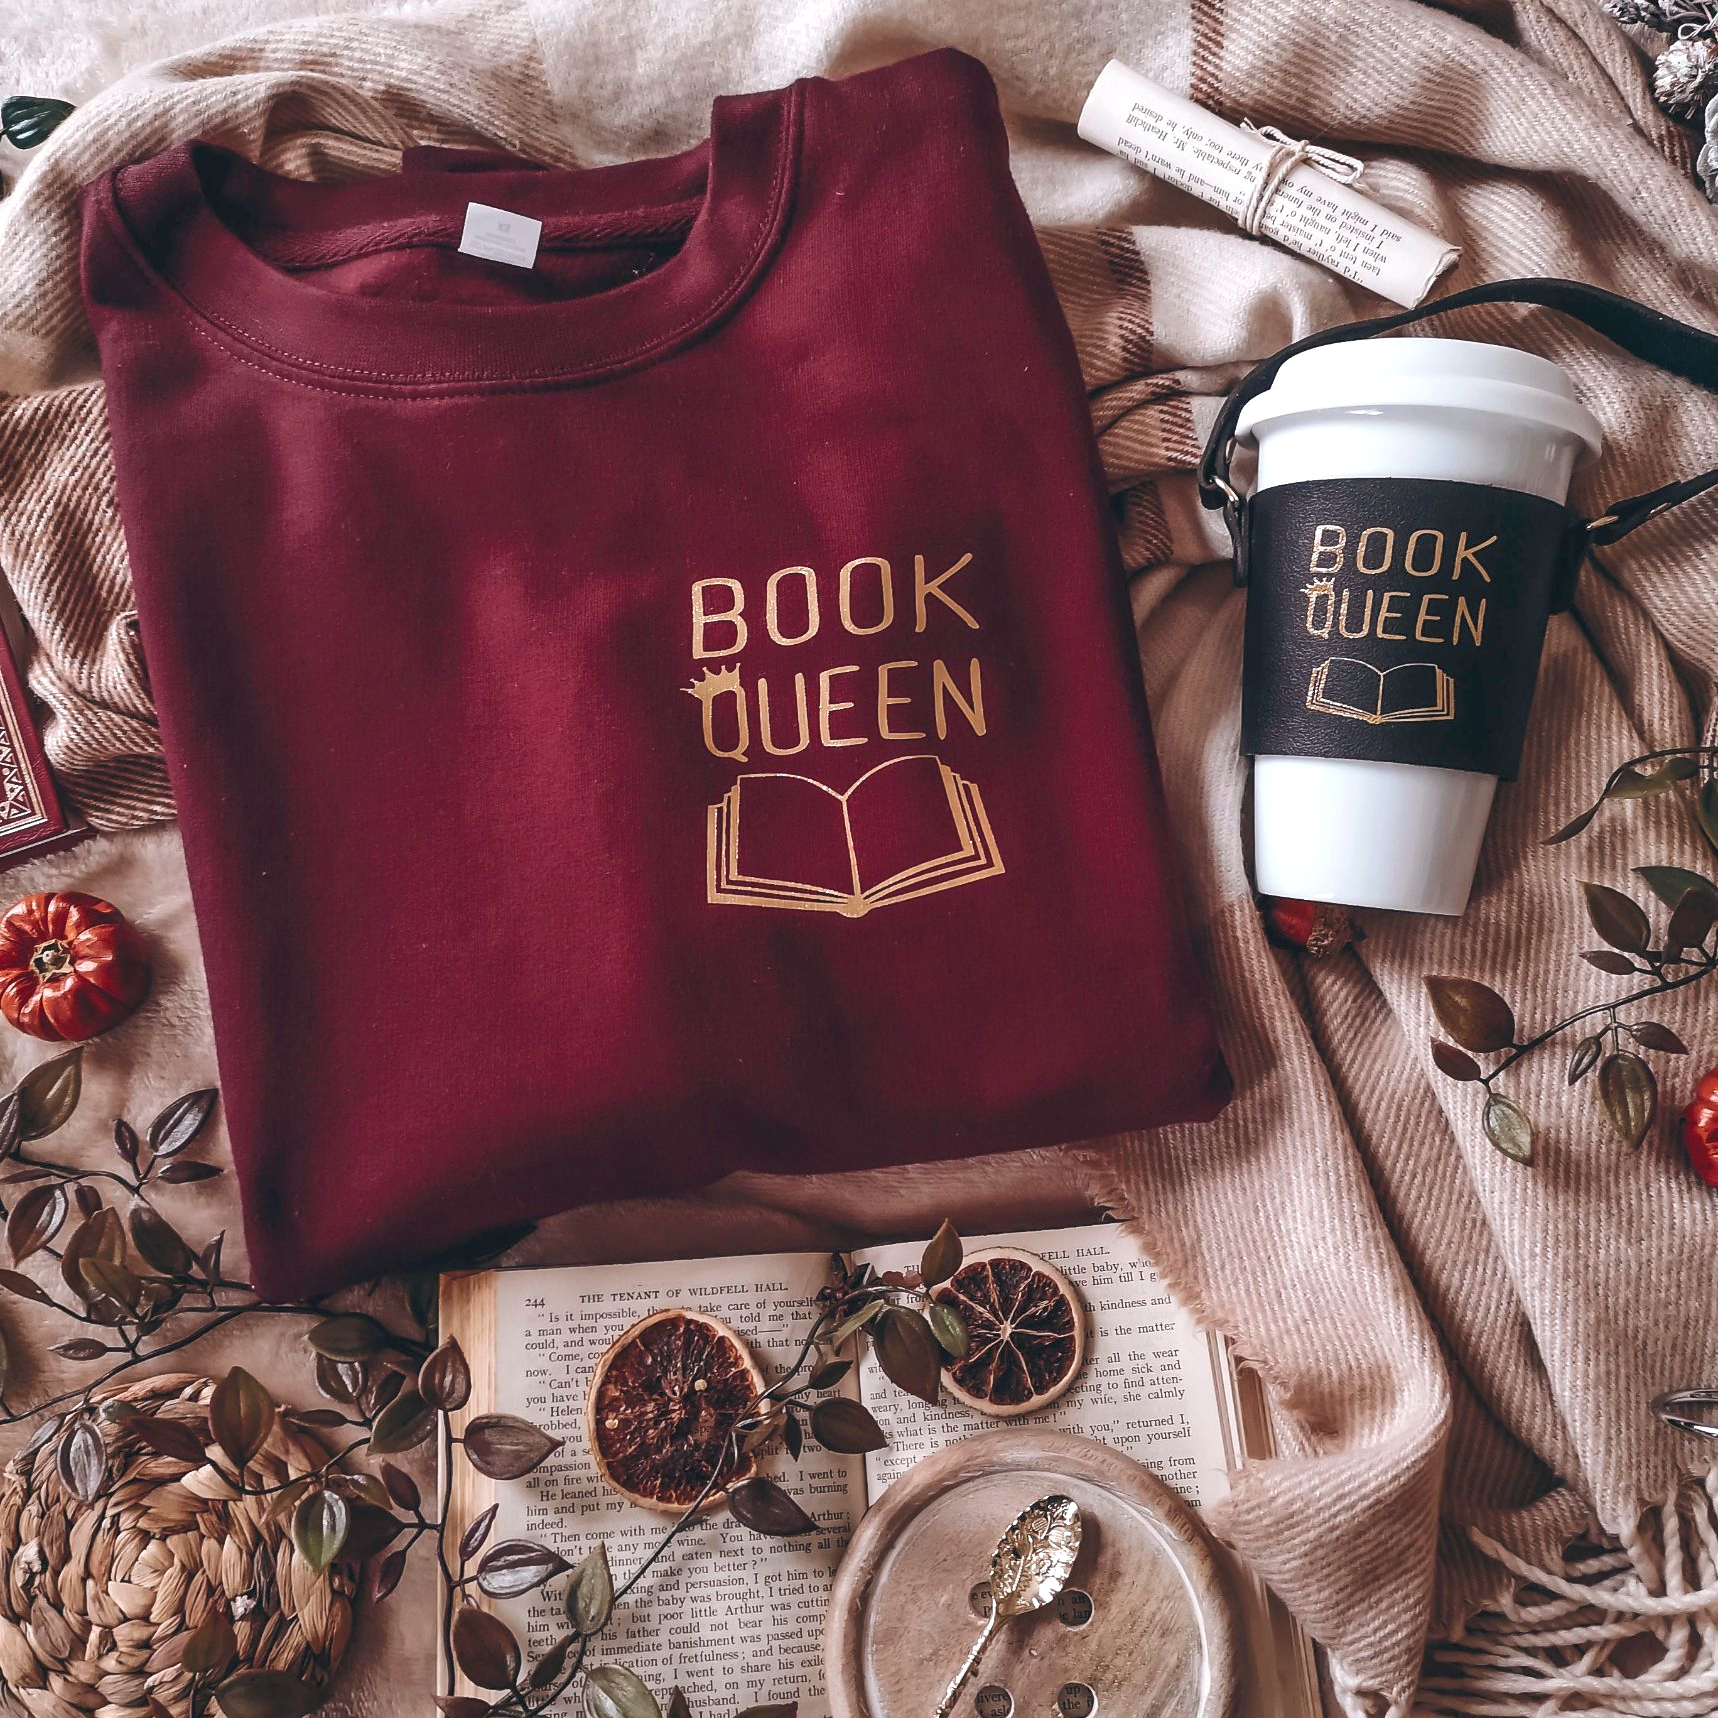 New cosy and bookish designs                                                                                                                                                                   ALL NEW PRODUCTS